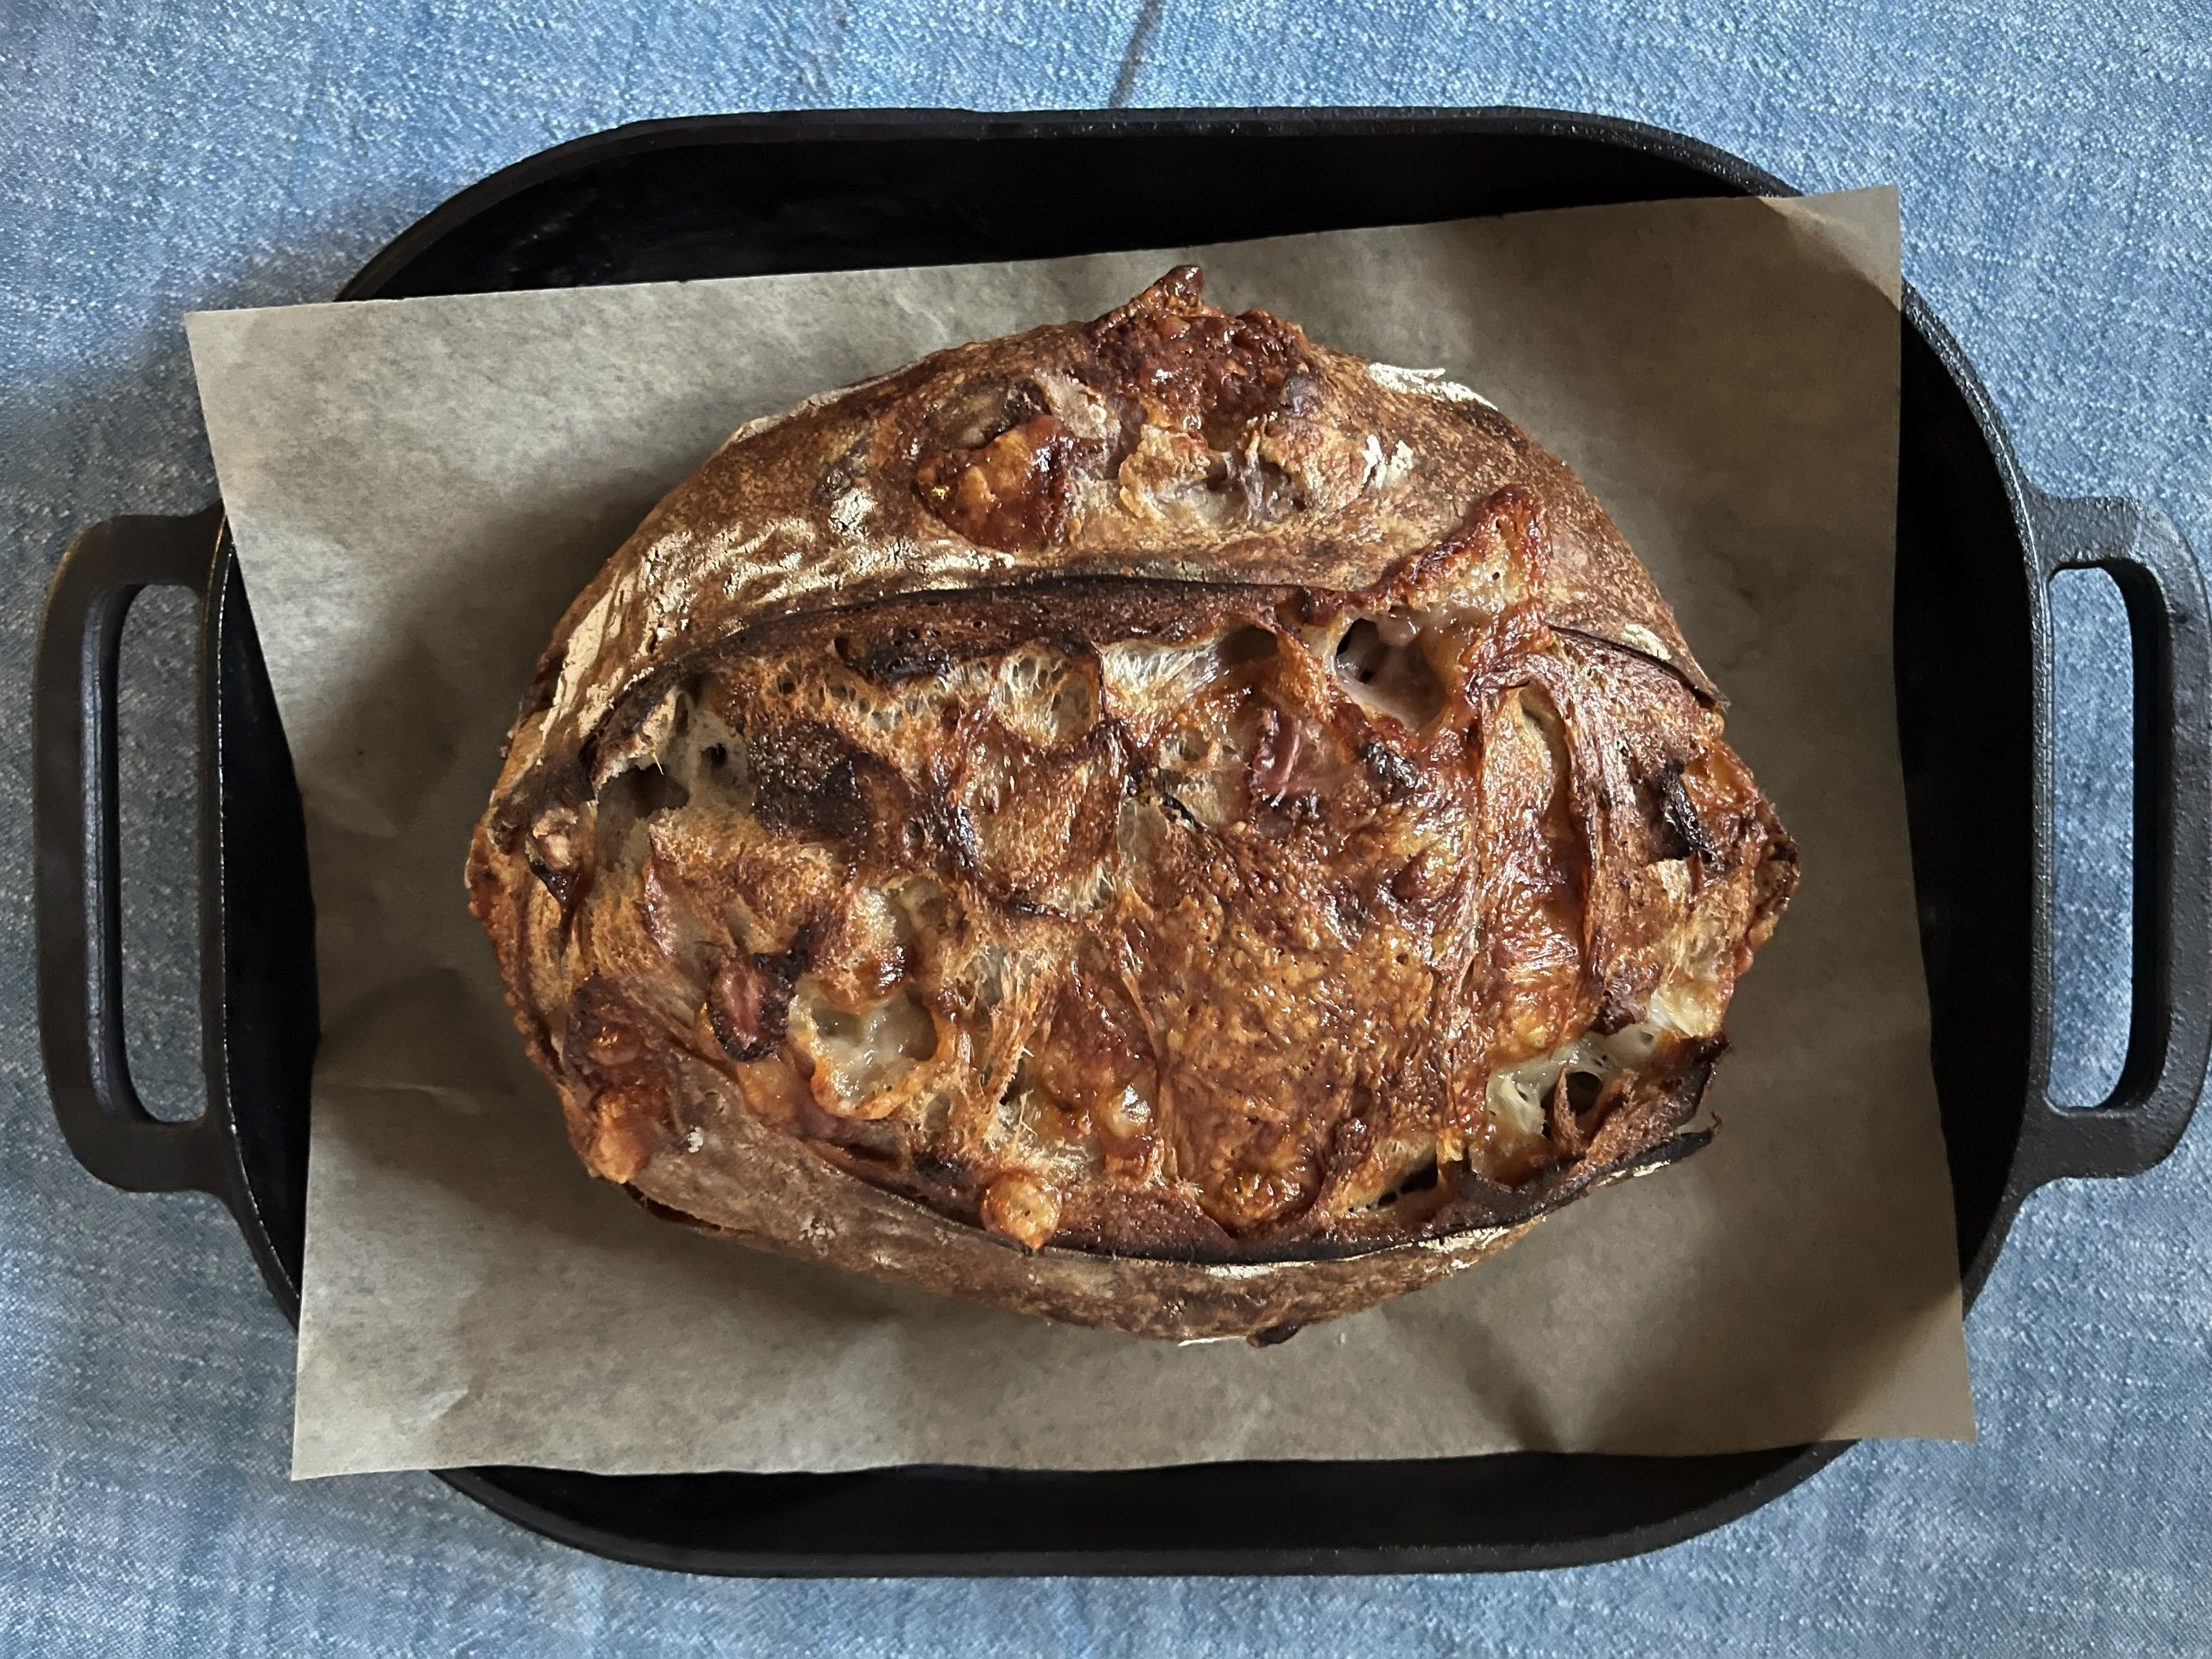 A loaf of strawberry and comte bread sots on a black baking pan on top of a blue tablecloth.